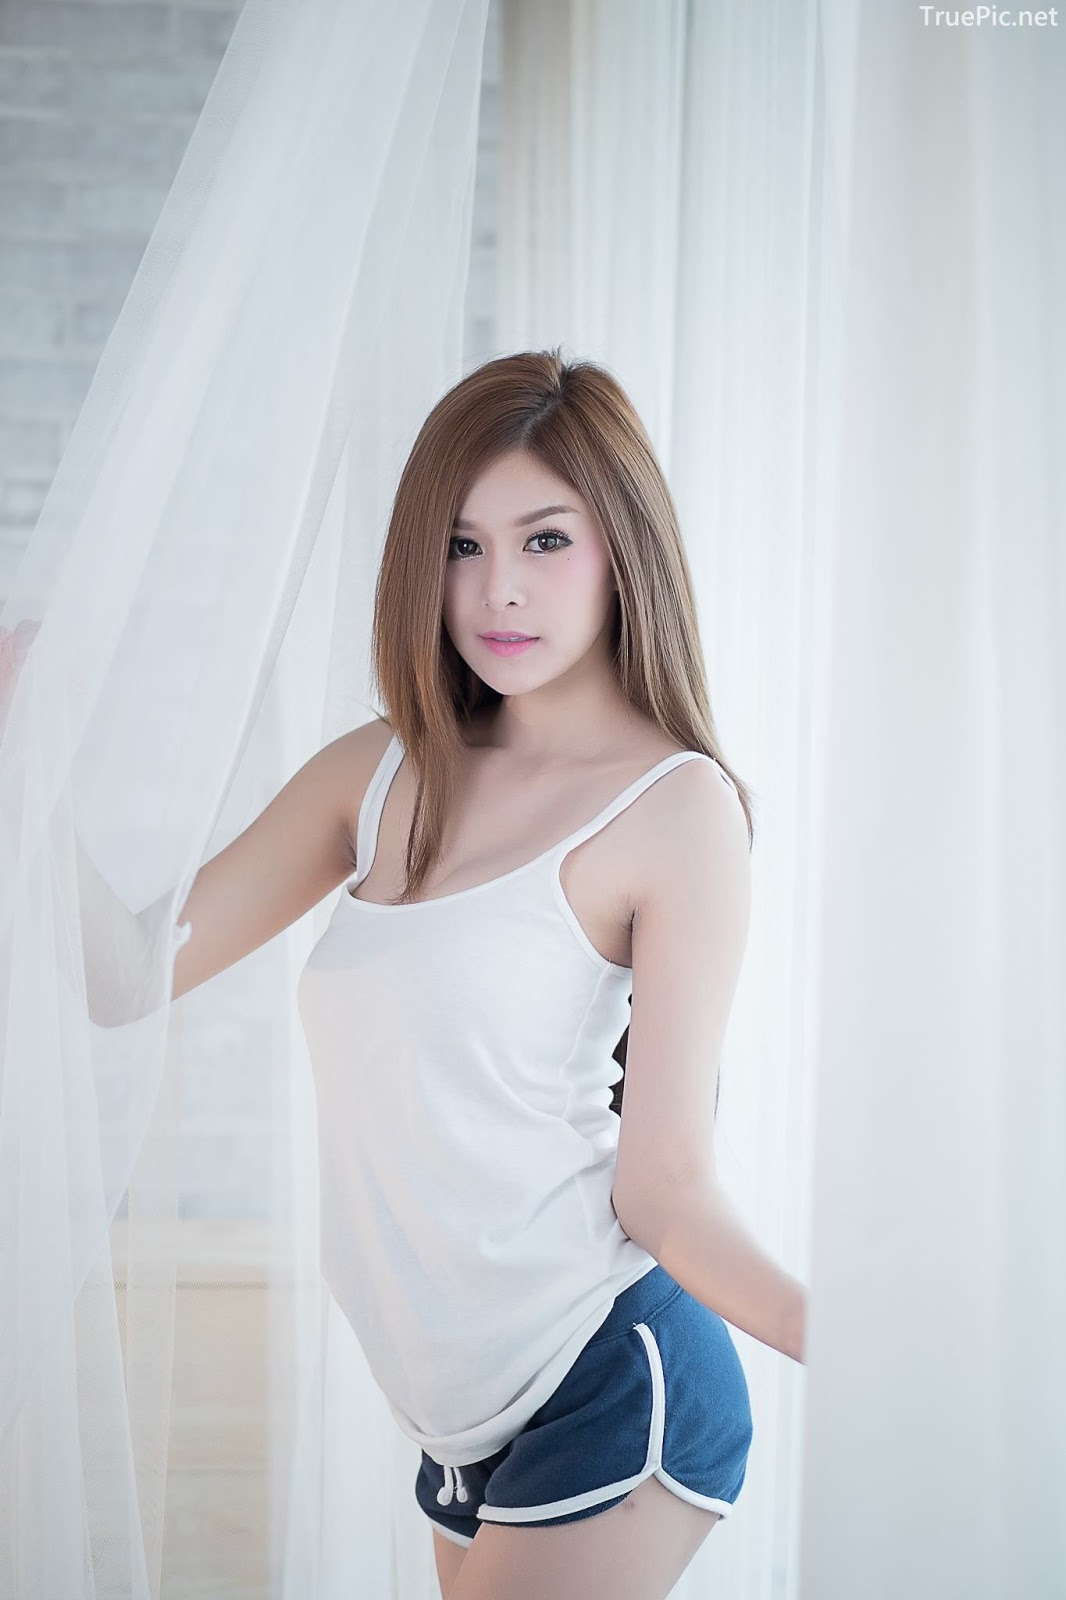 Thailand model Kanyakarn Kaewnisai - Getting up early welcome the Sun - Picture 2